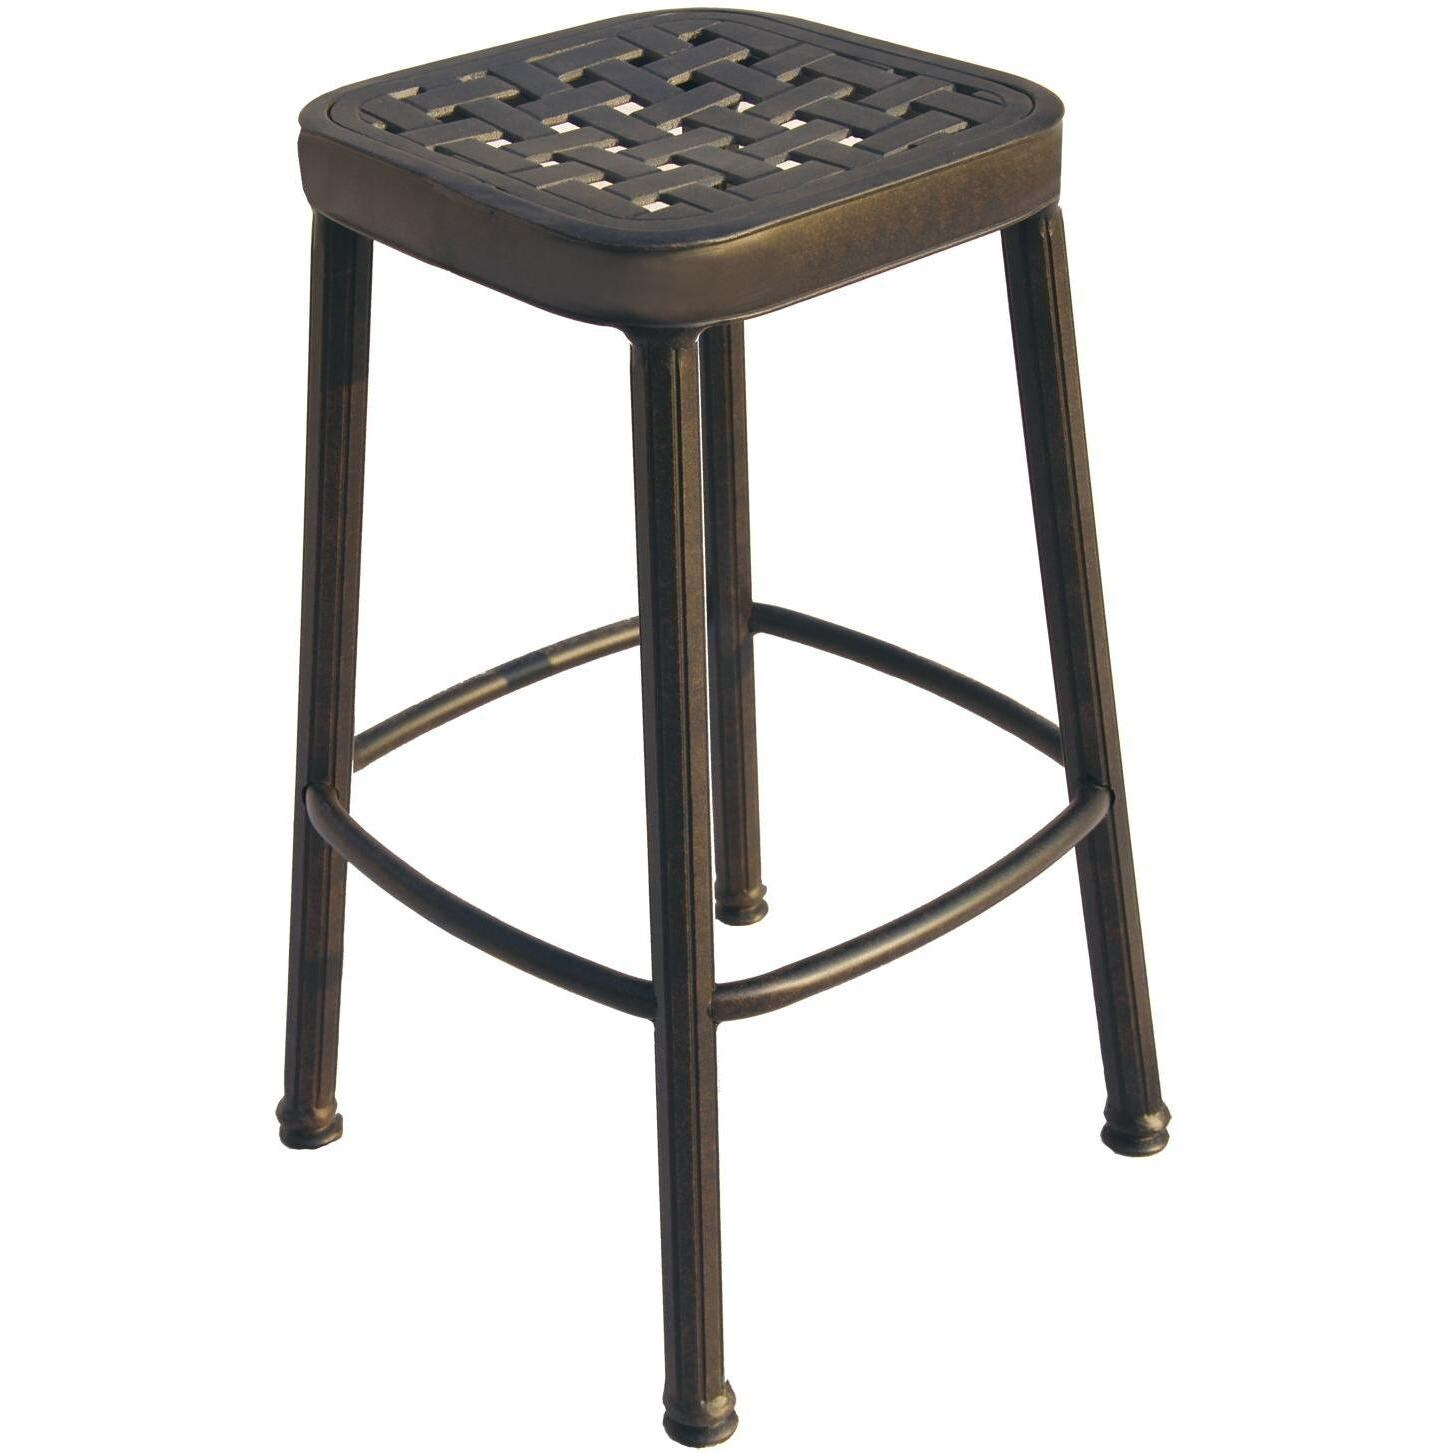 darlee cast aluminum outdoor patio round square bar stool antique bronze